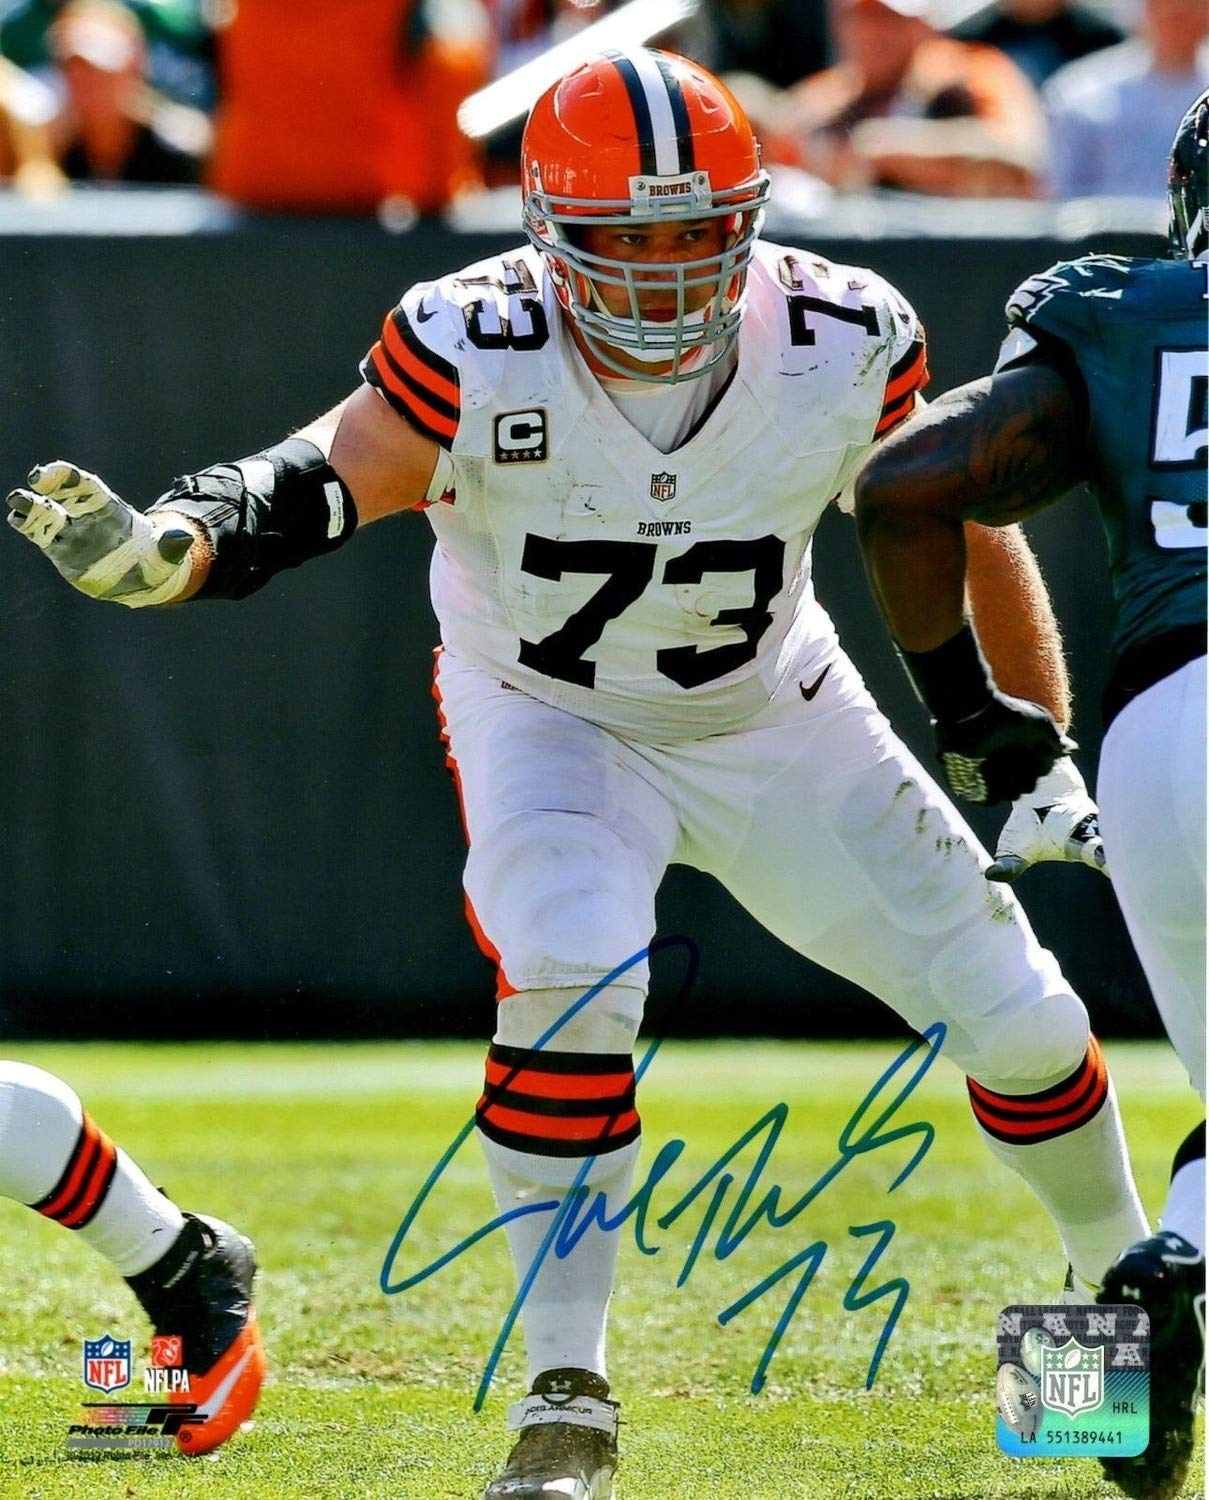 Browns Lineman Joe Thomas Autographed 8x10 Photo #1 Signed - 10 X Pro Bowl 10363 Snaps - Certified Authentic